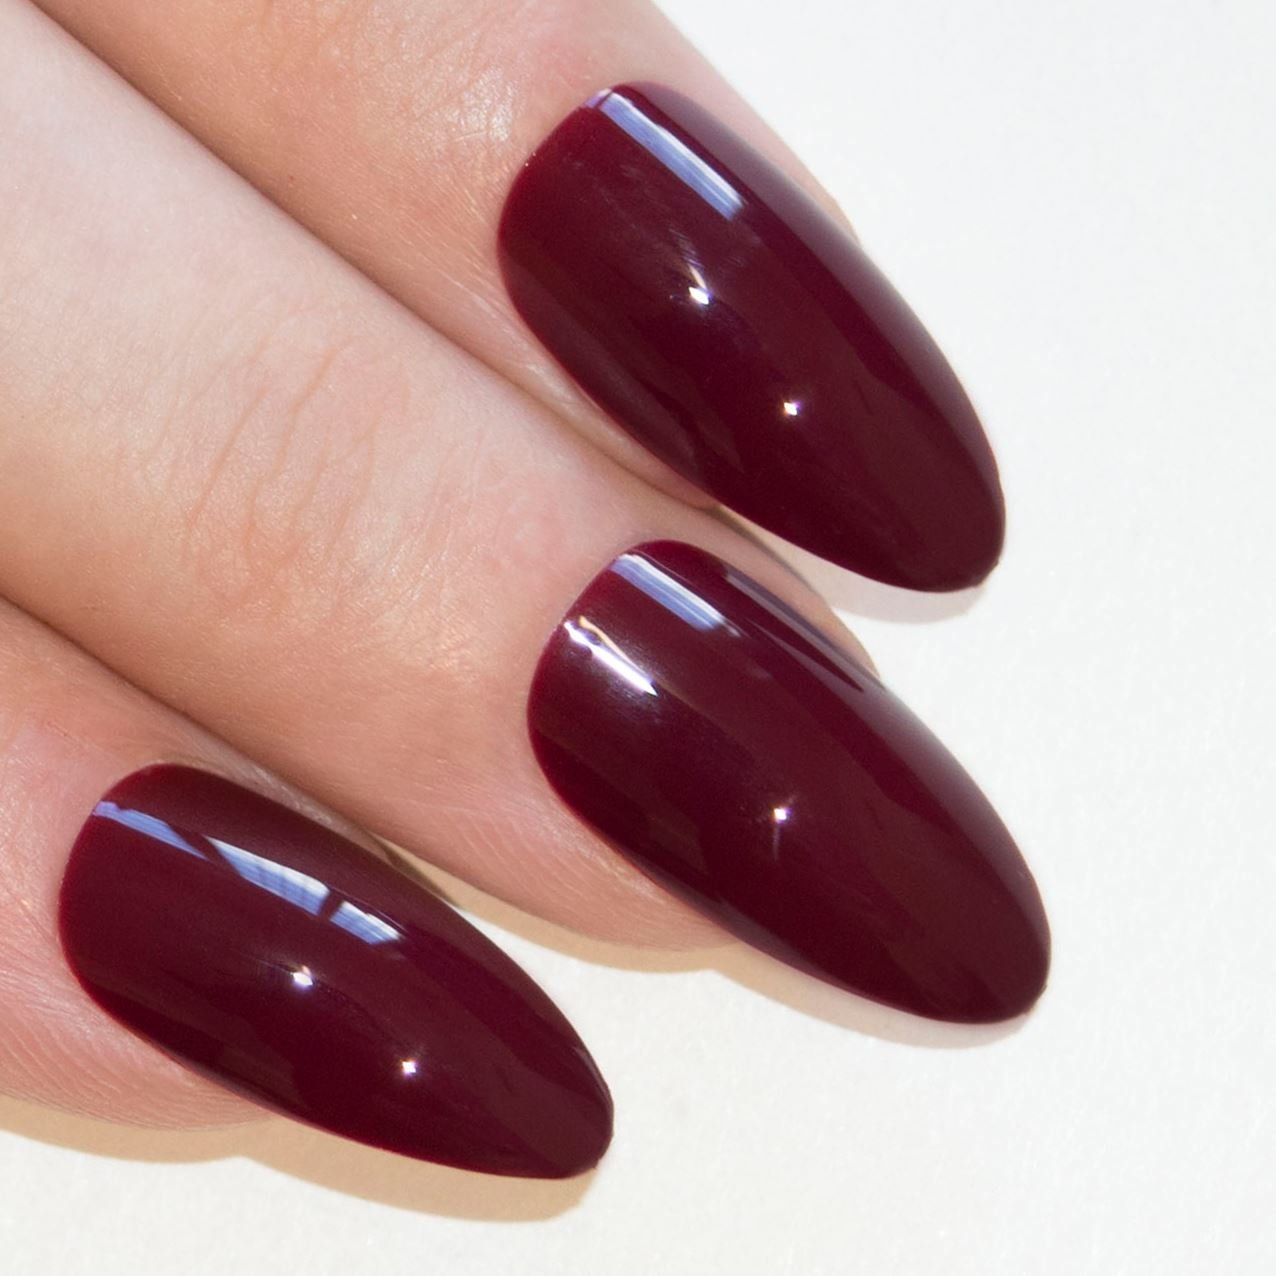 Amazon.com: Bling Art Almond False Nails Fake Stiletto Red Fire ...